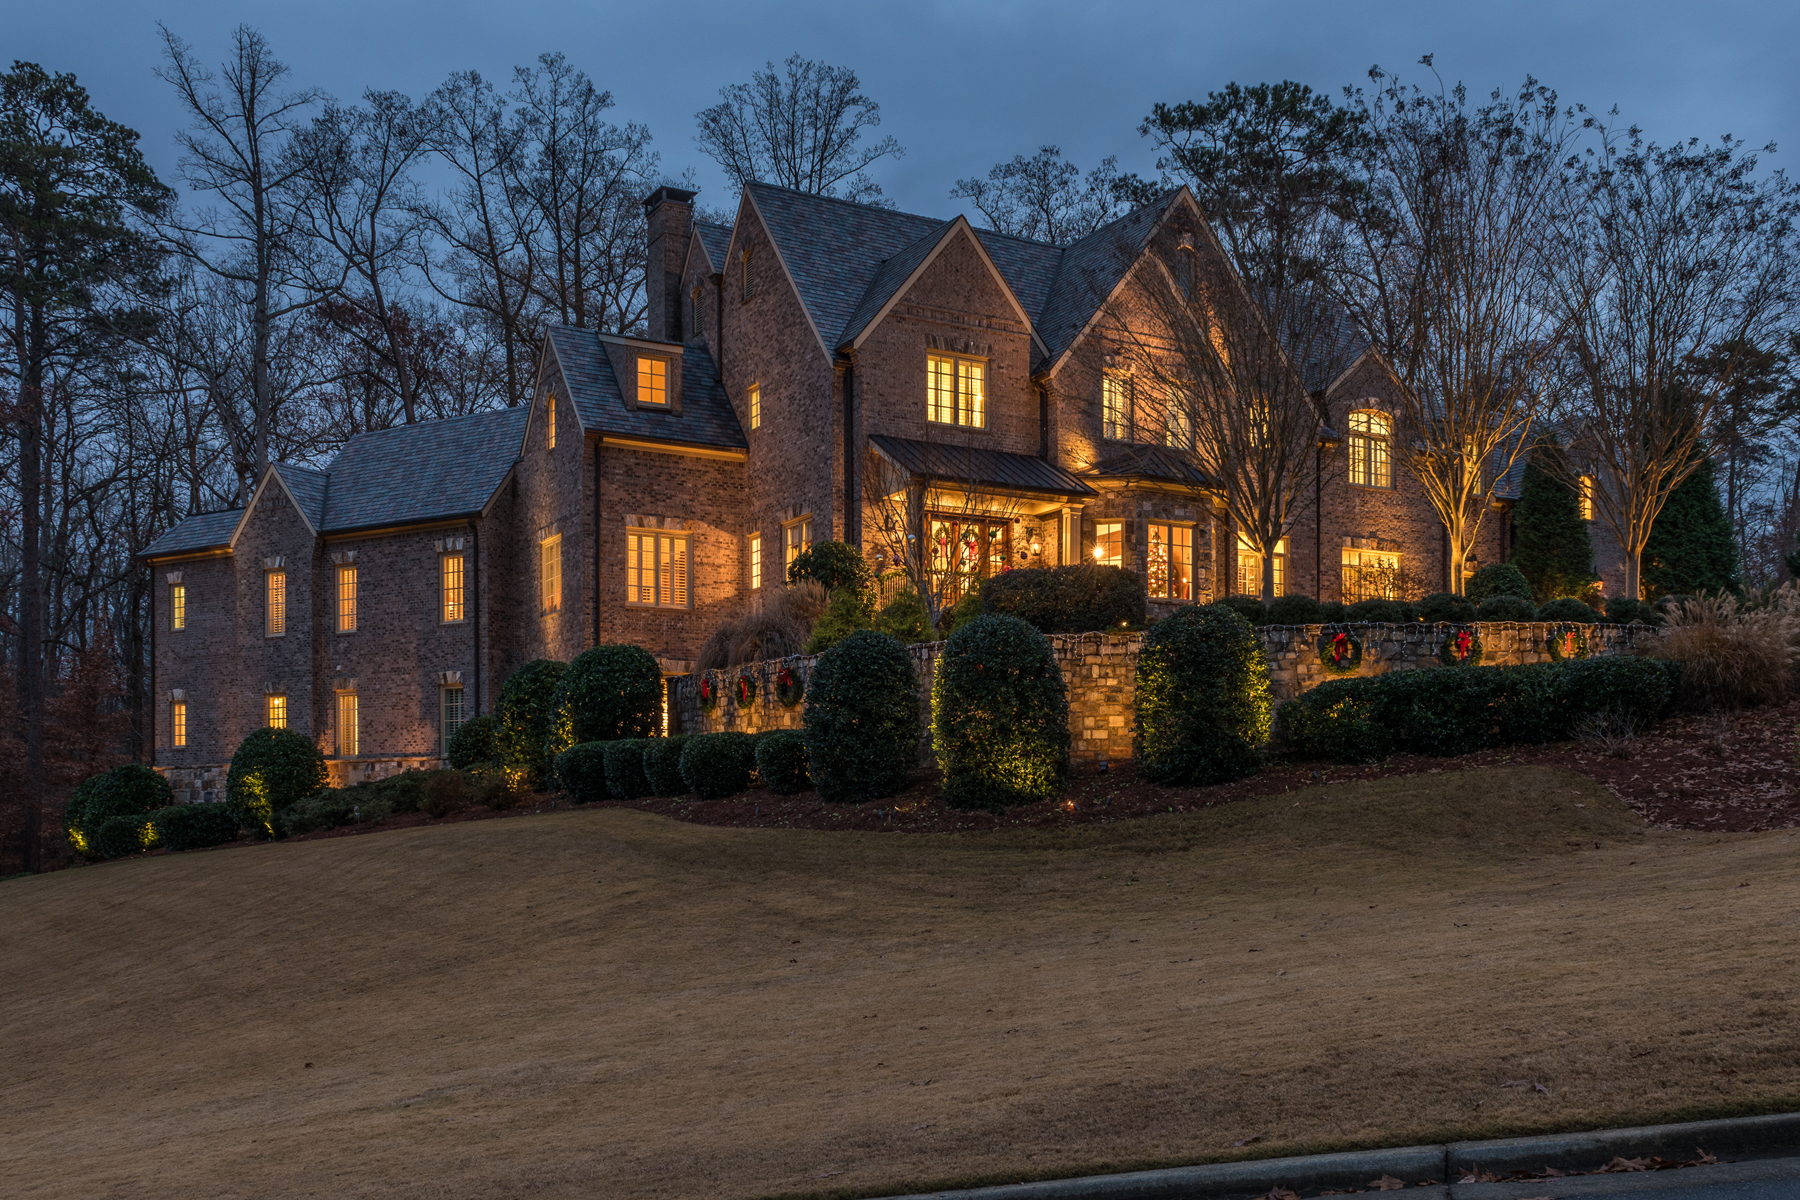 Single Family Home for Sale at Exquisite Luxury Estate 4727 Polo Lane SE Atlanta, Georgia 30339 United States